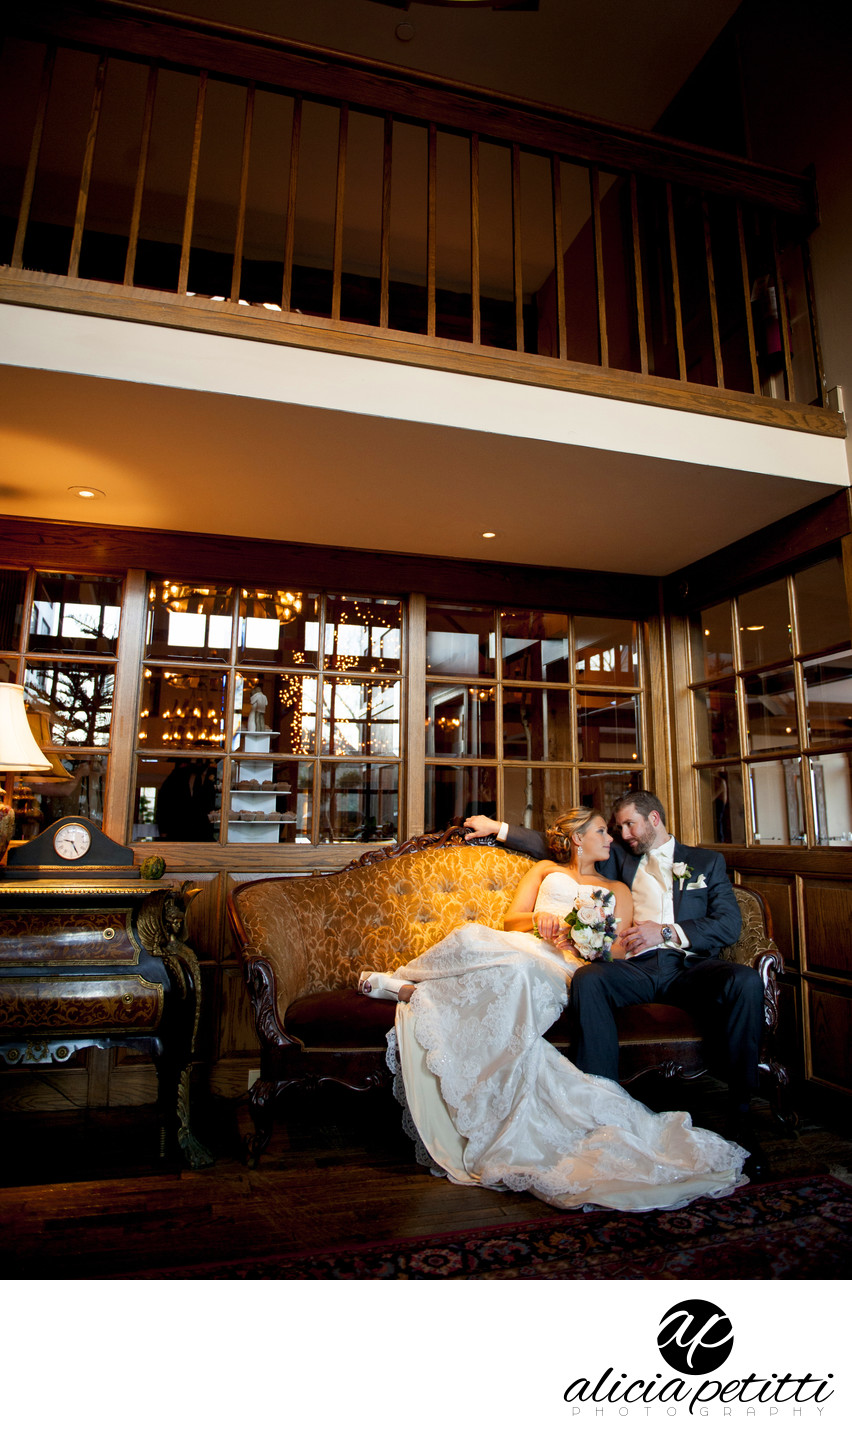 Bedford Village Inn Wedding Venue